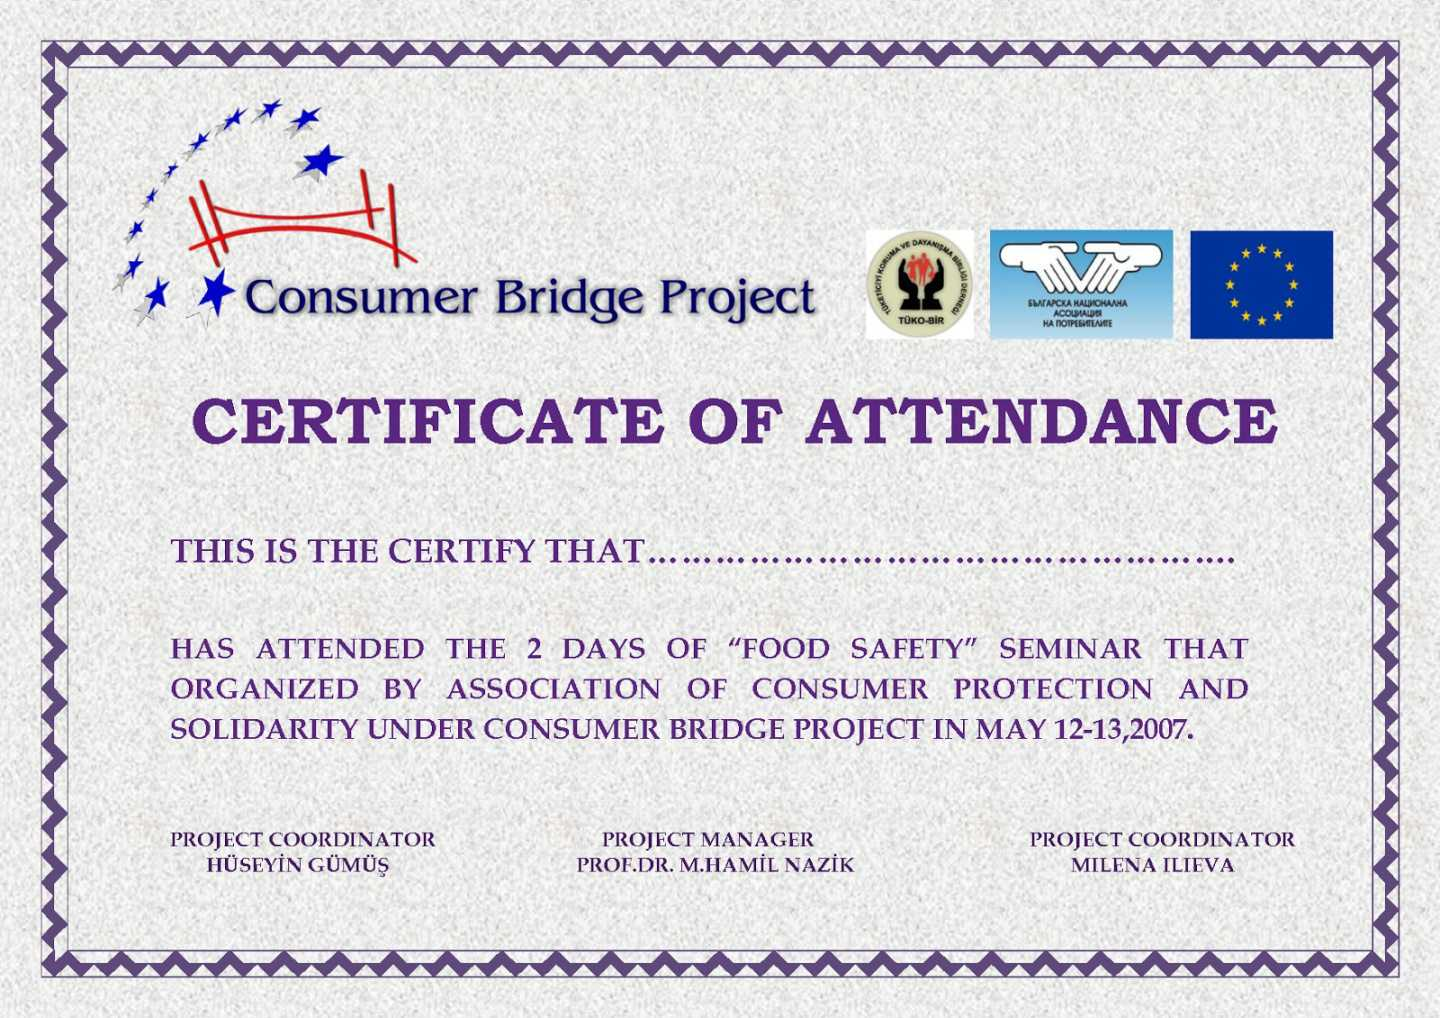 Perfect Attendance Certificate Templates Free Download Pertaining To Perfect Attendance Certificate Free Template